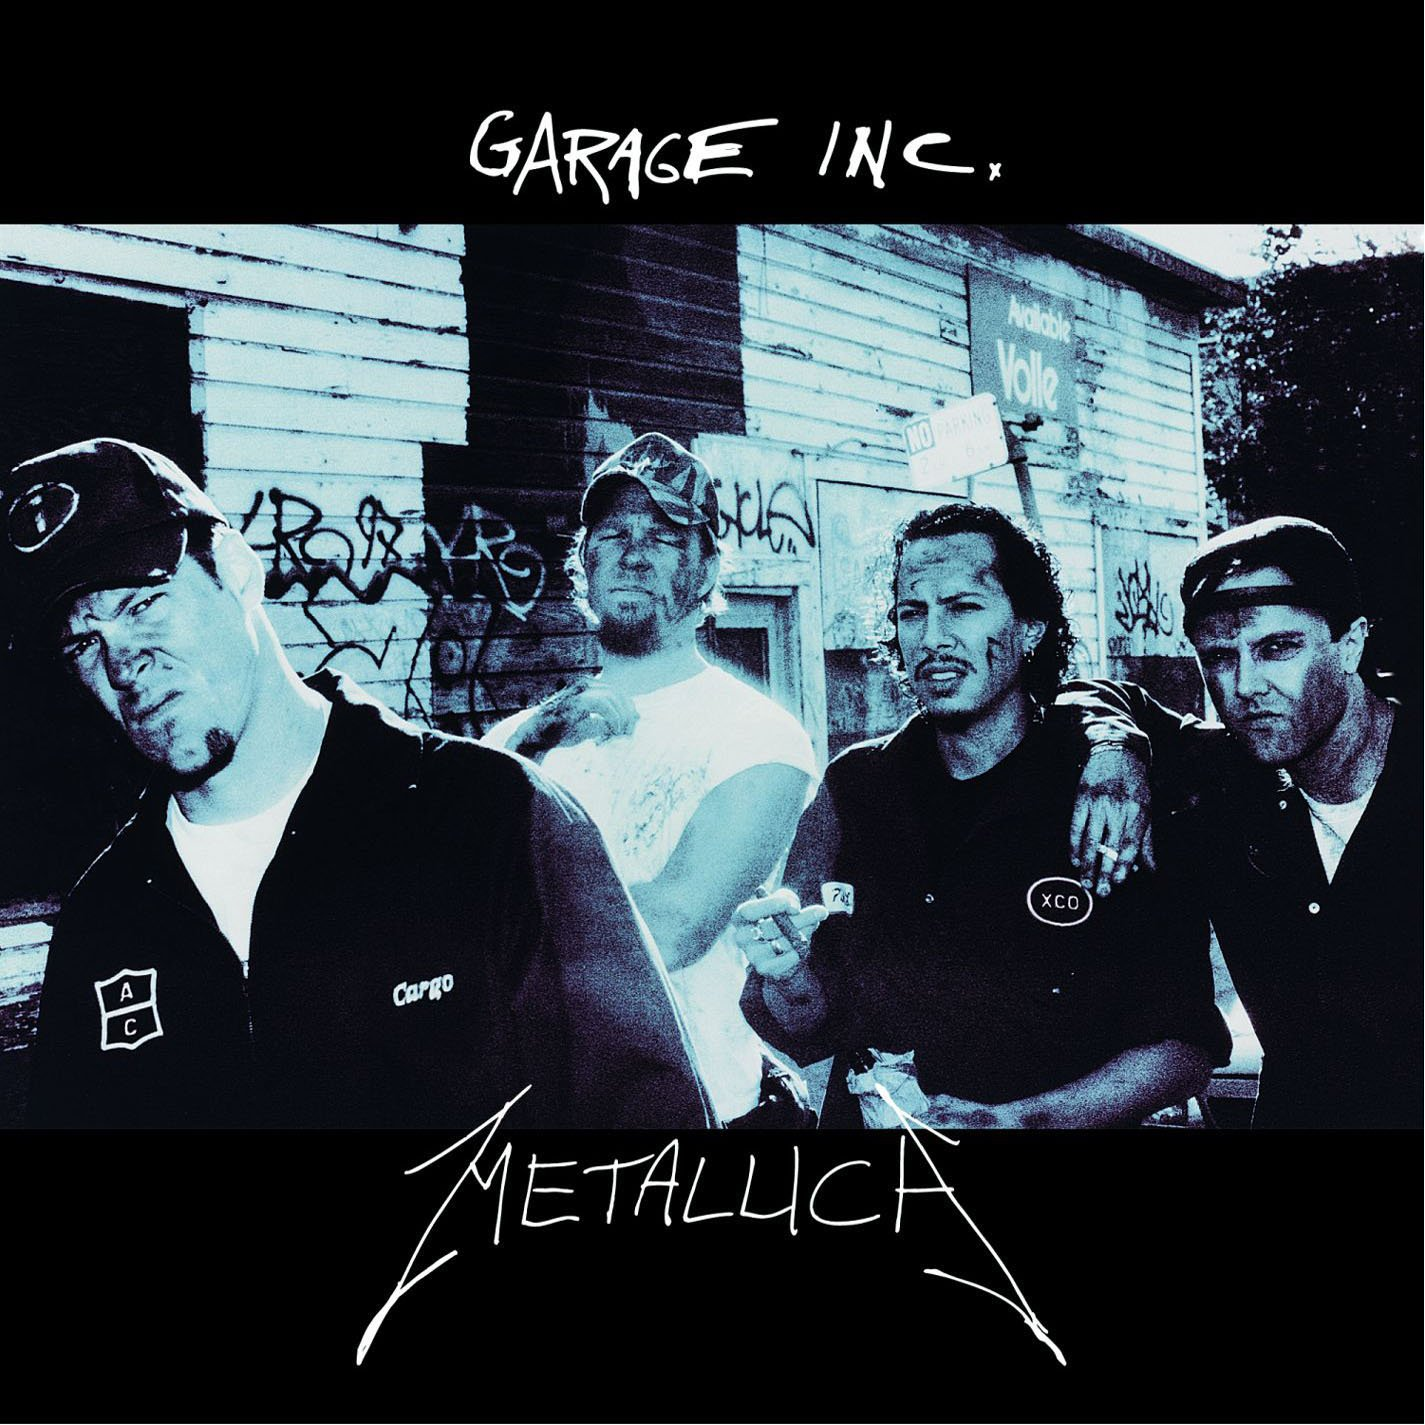 Vinilo : Metallica - Garage Inc (Portugal - Import, 3 Disc)